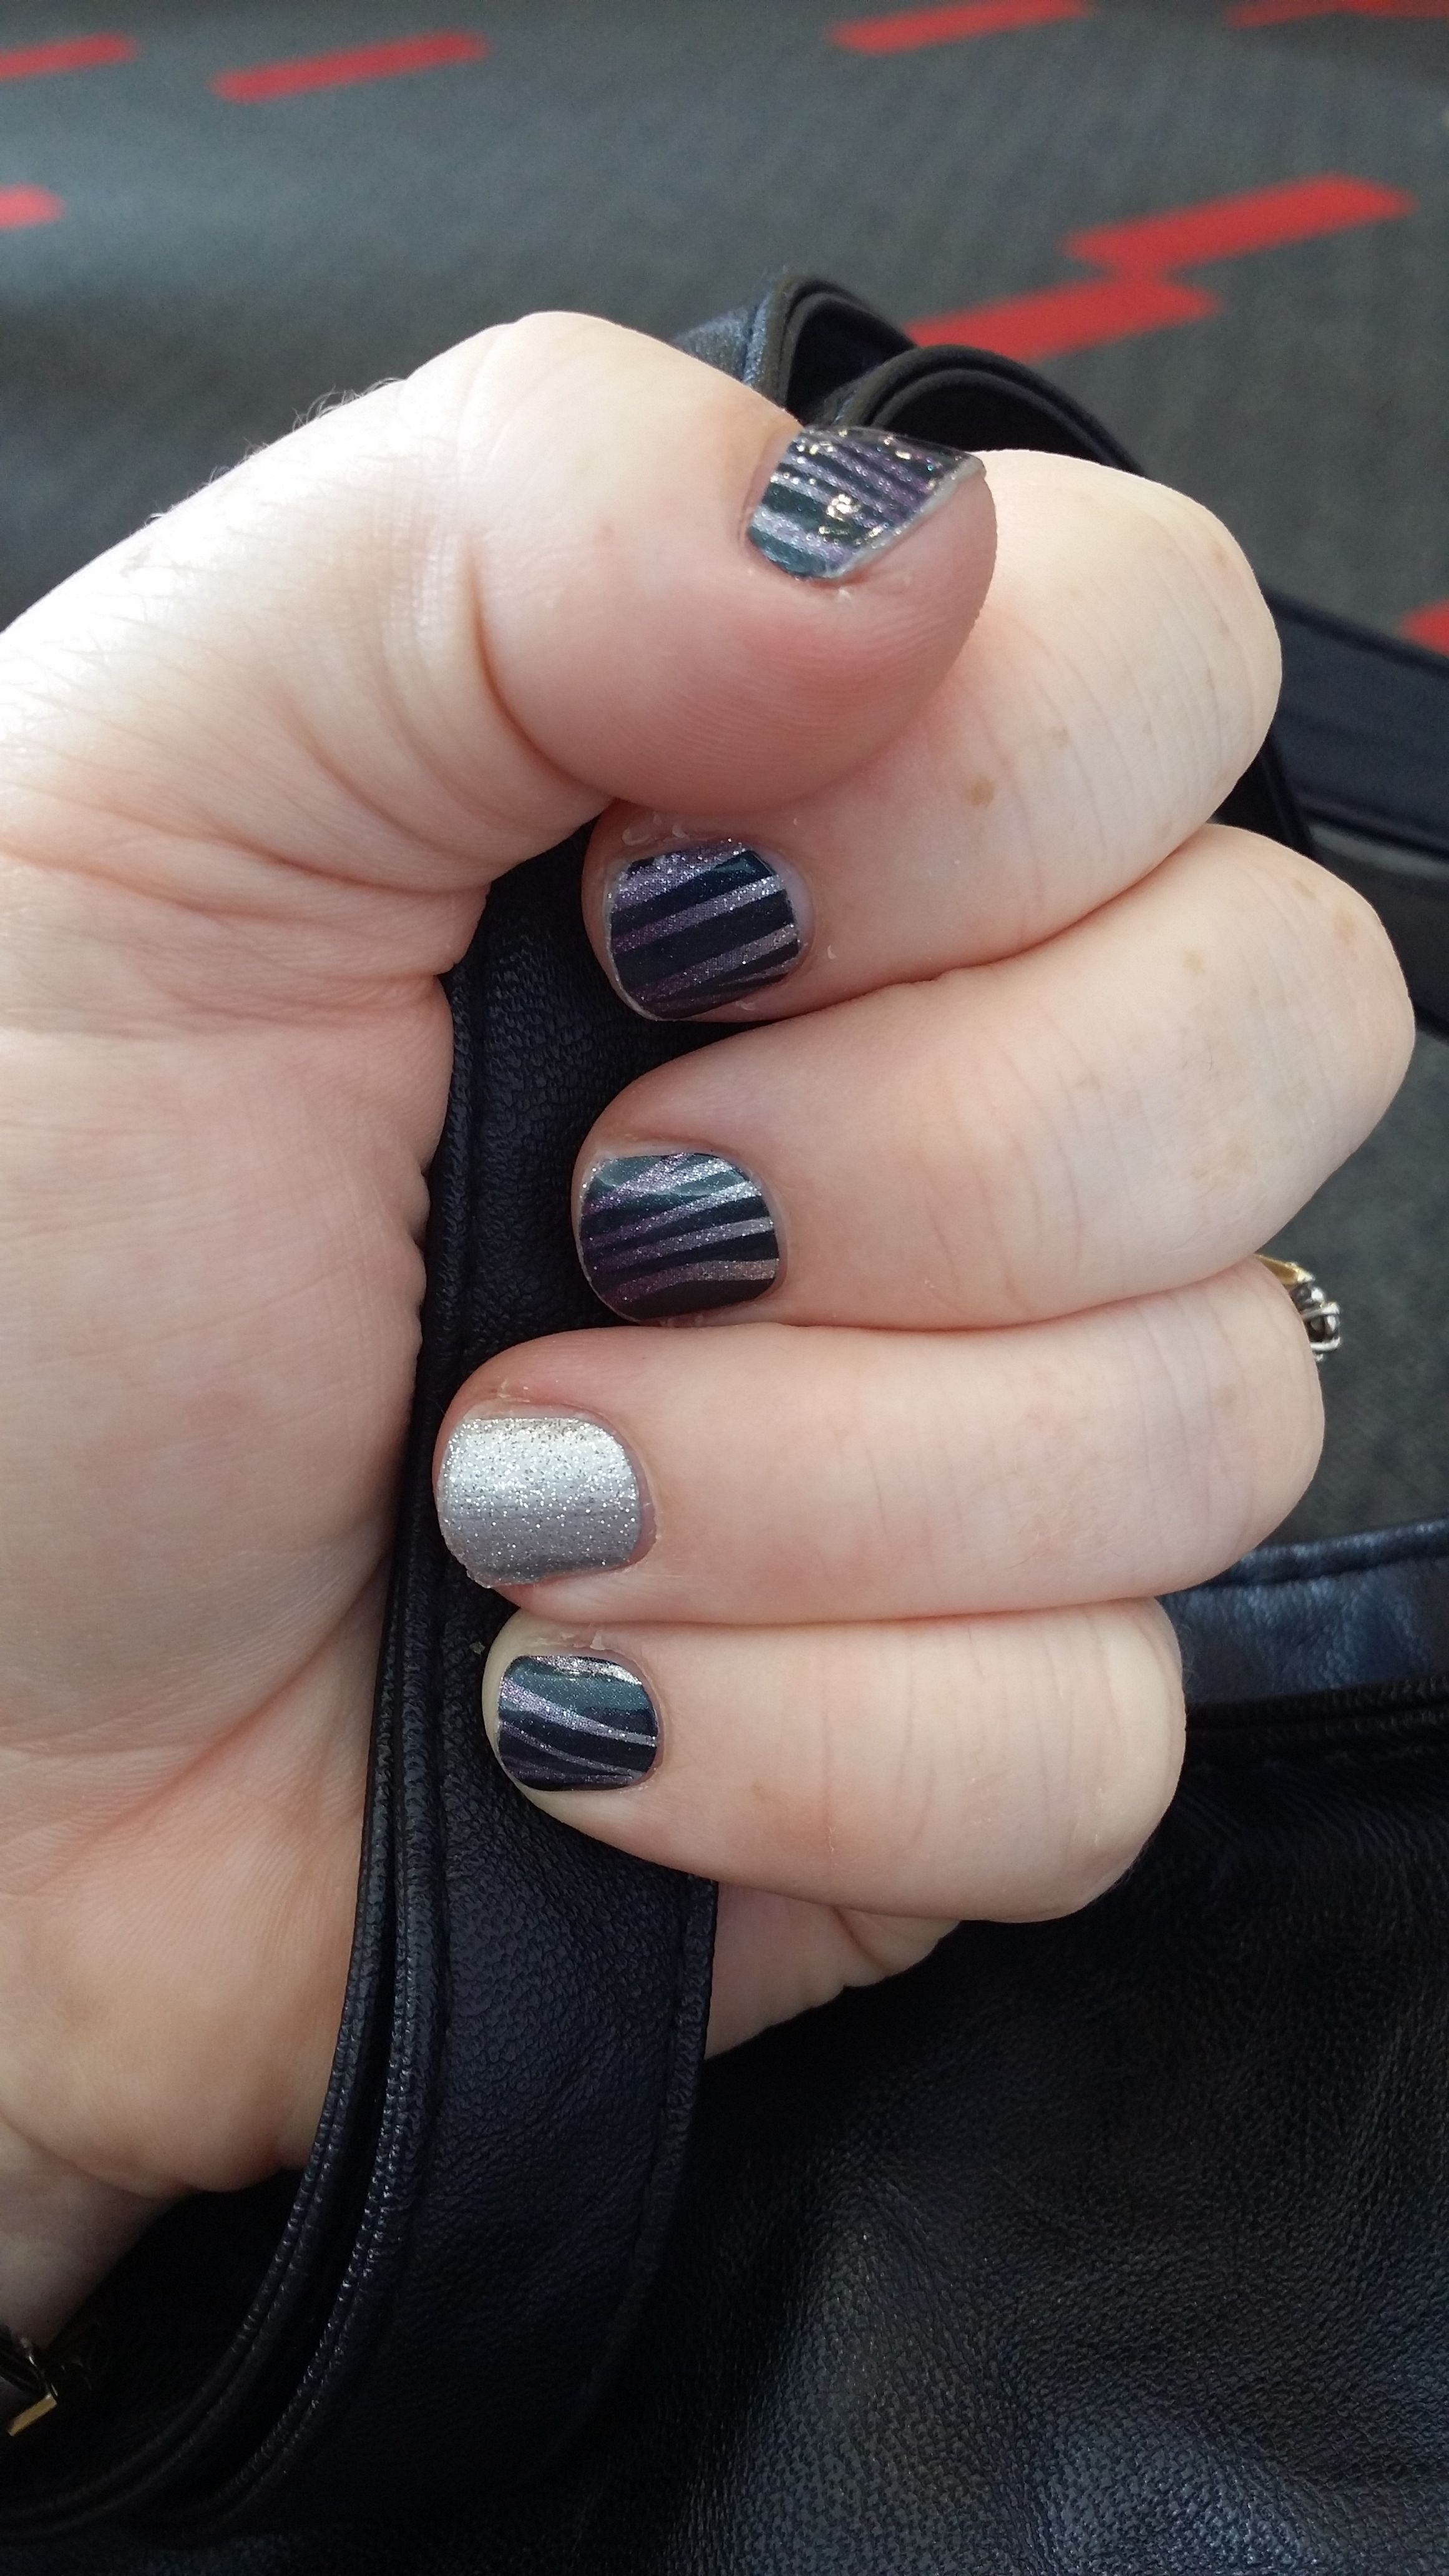 Everyone needs a little #zebradivajn in their life. I enjoyed combining it with #diamonddustsparklejn to really accentuate the silver.#kozicanjam #jamkozyoucan #jamberry #nailfie